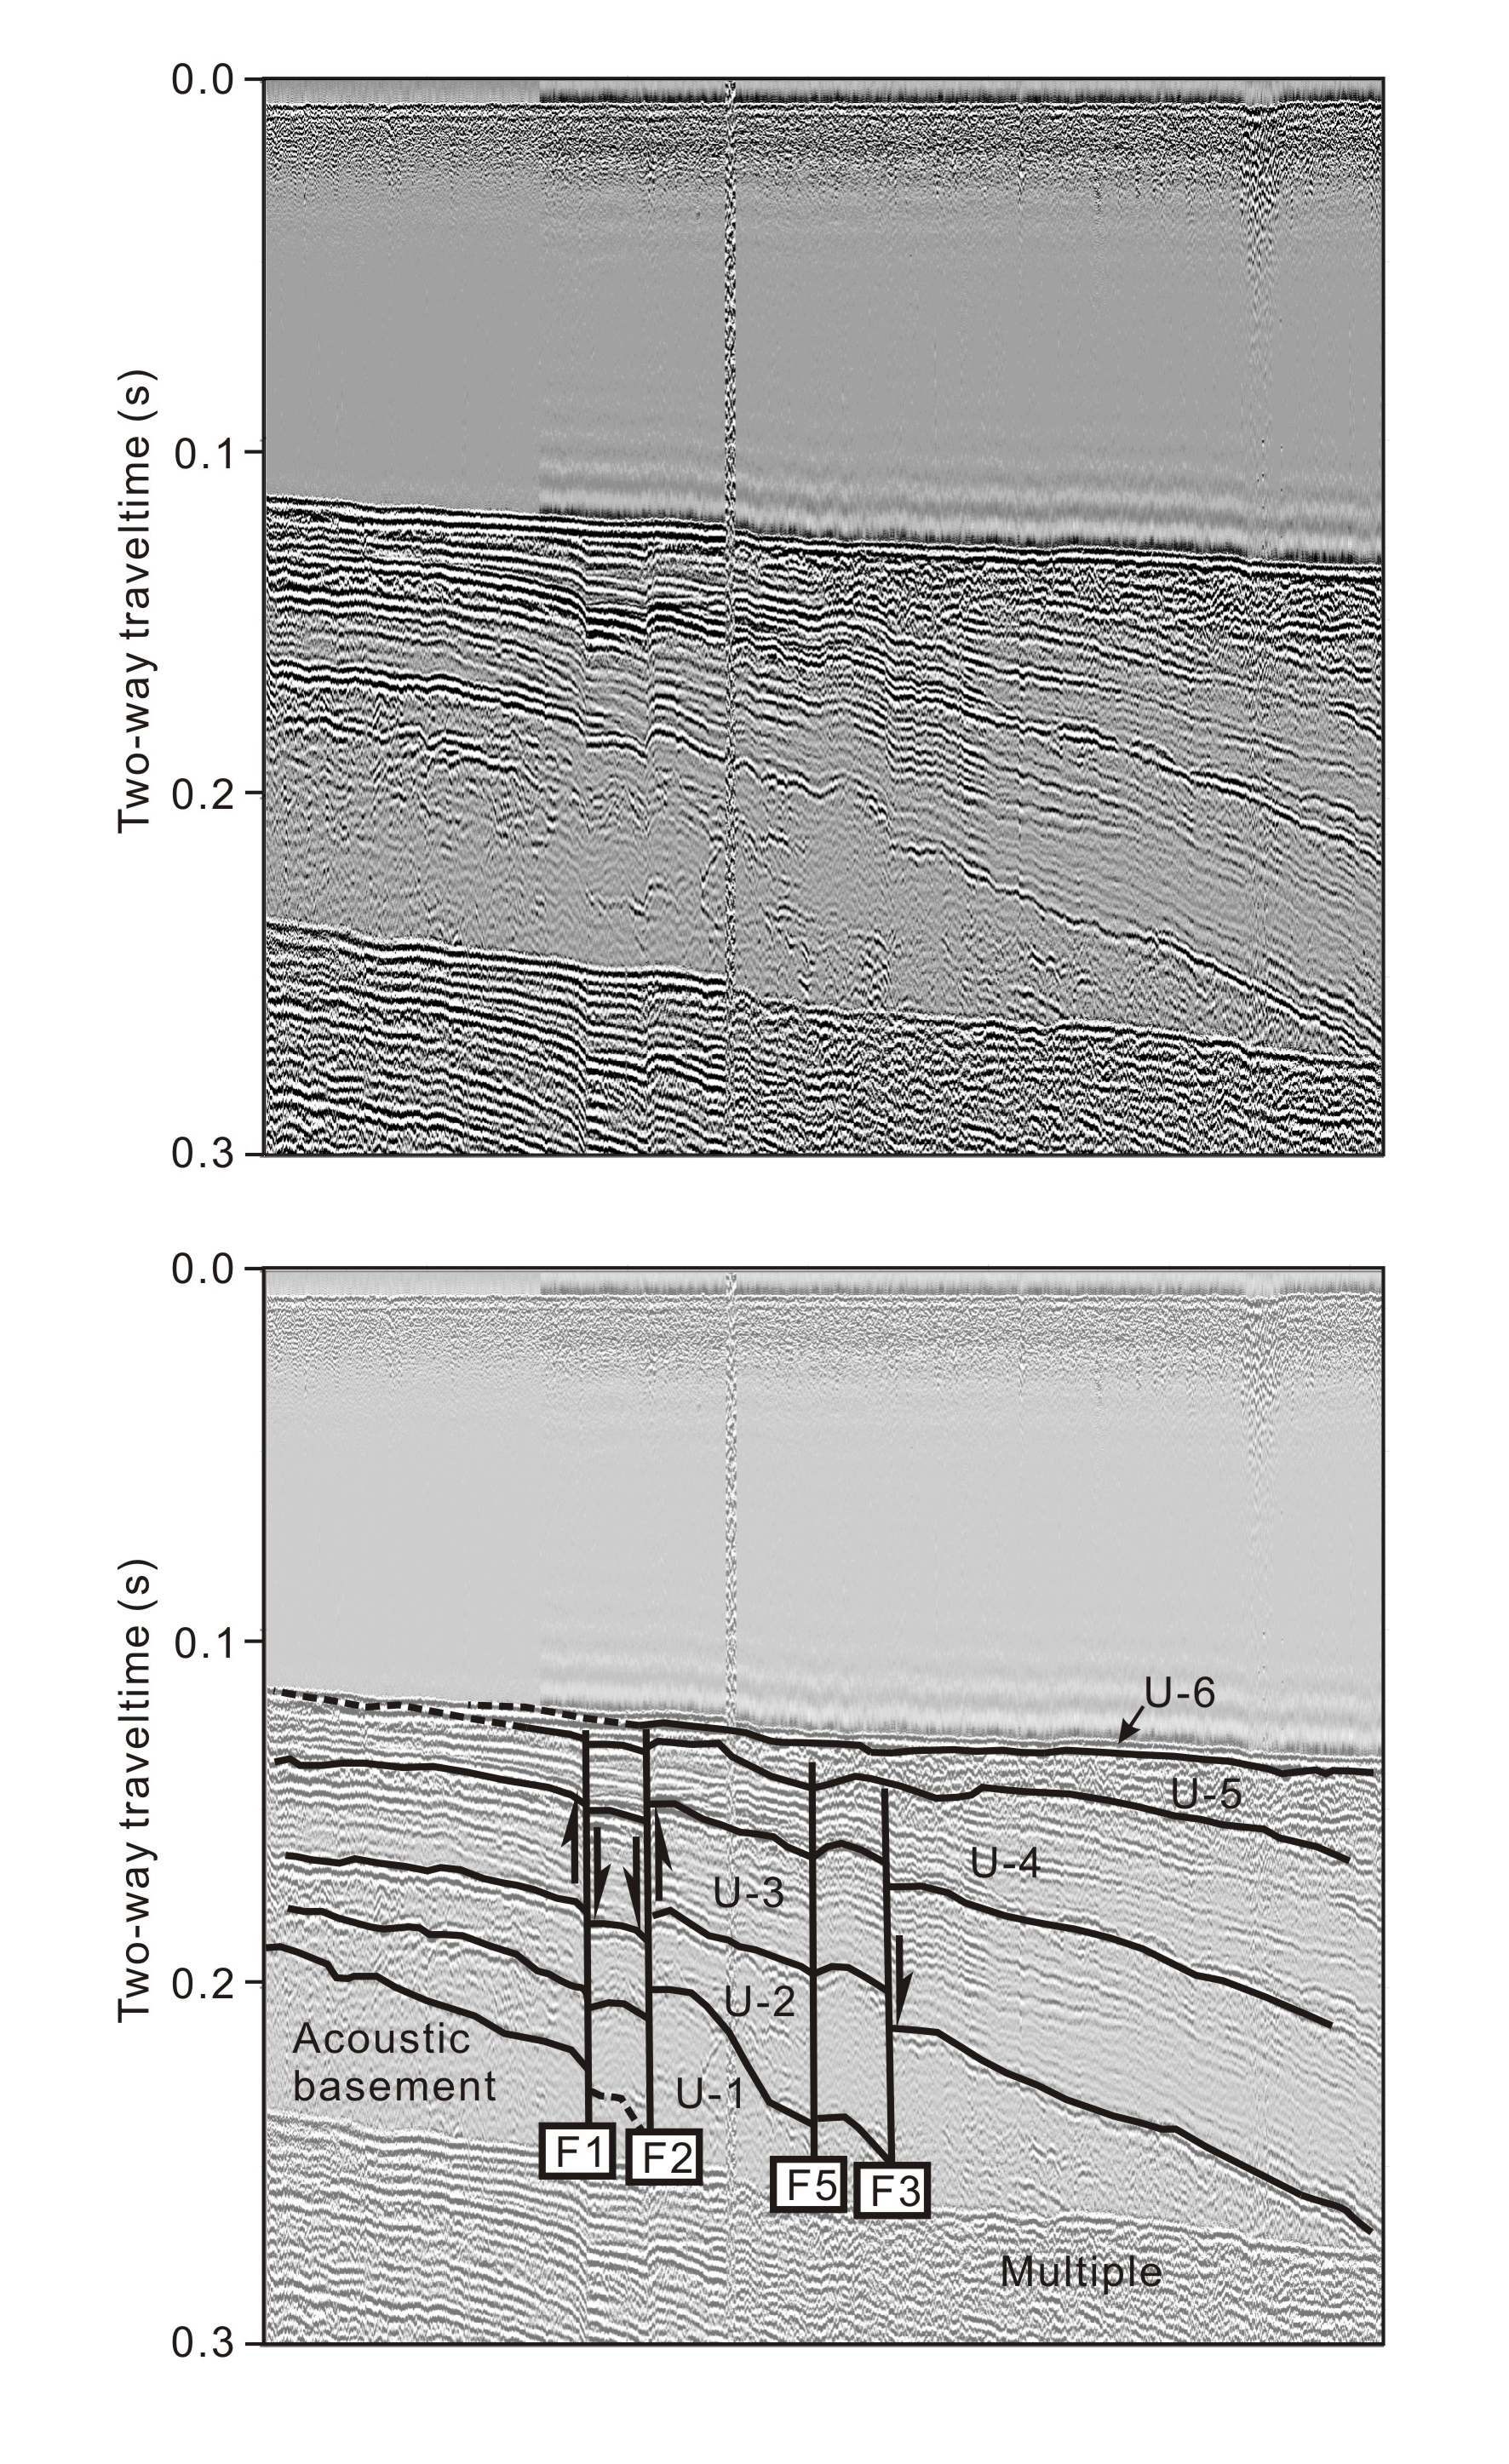 Fig. 3-8. (a) Seismic profile of K-06 and (b) its interpretive line drawings. See Fig. 3-4 for location.